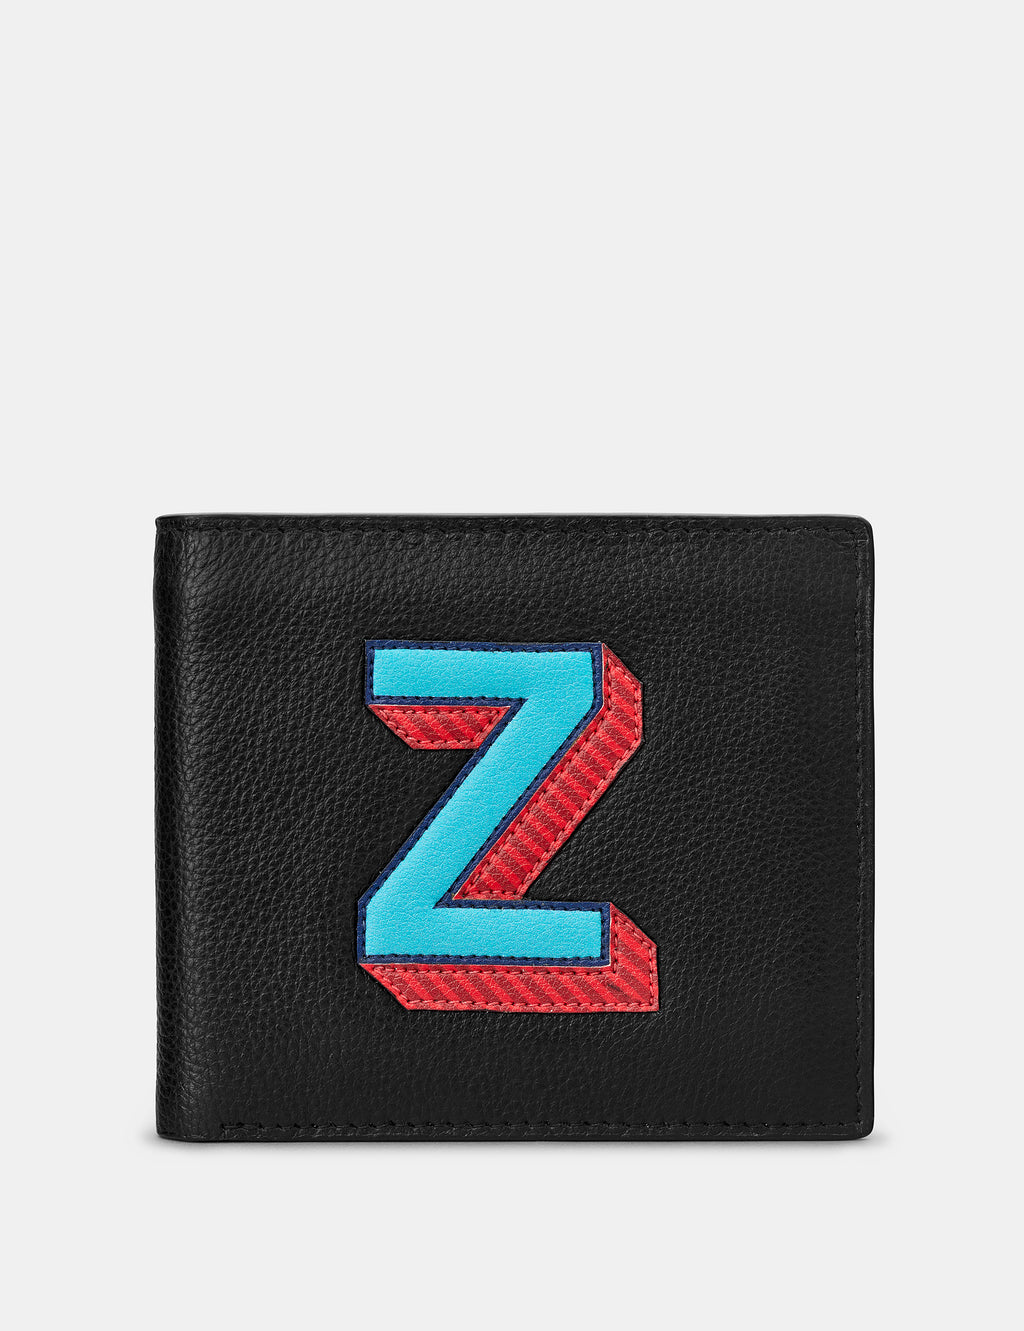 Z Initial Black Leather Wallet